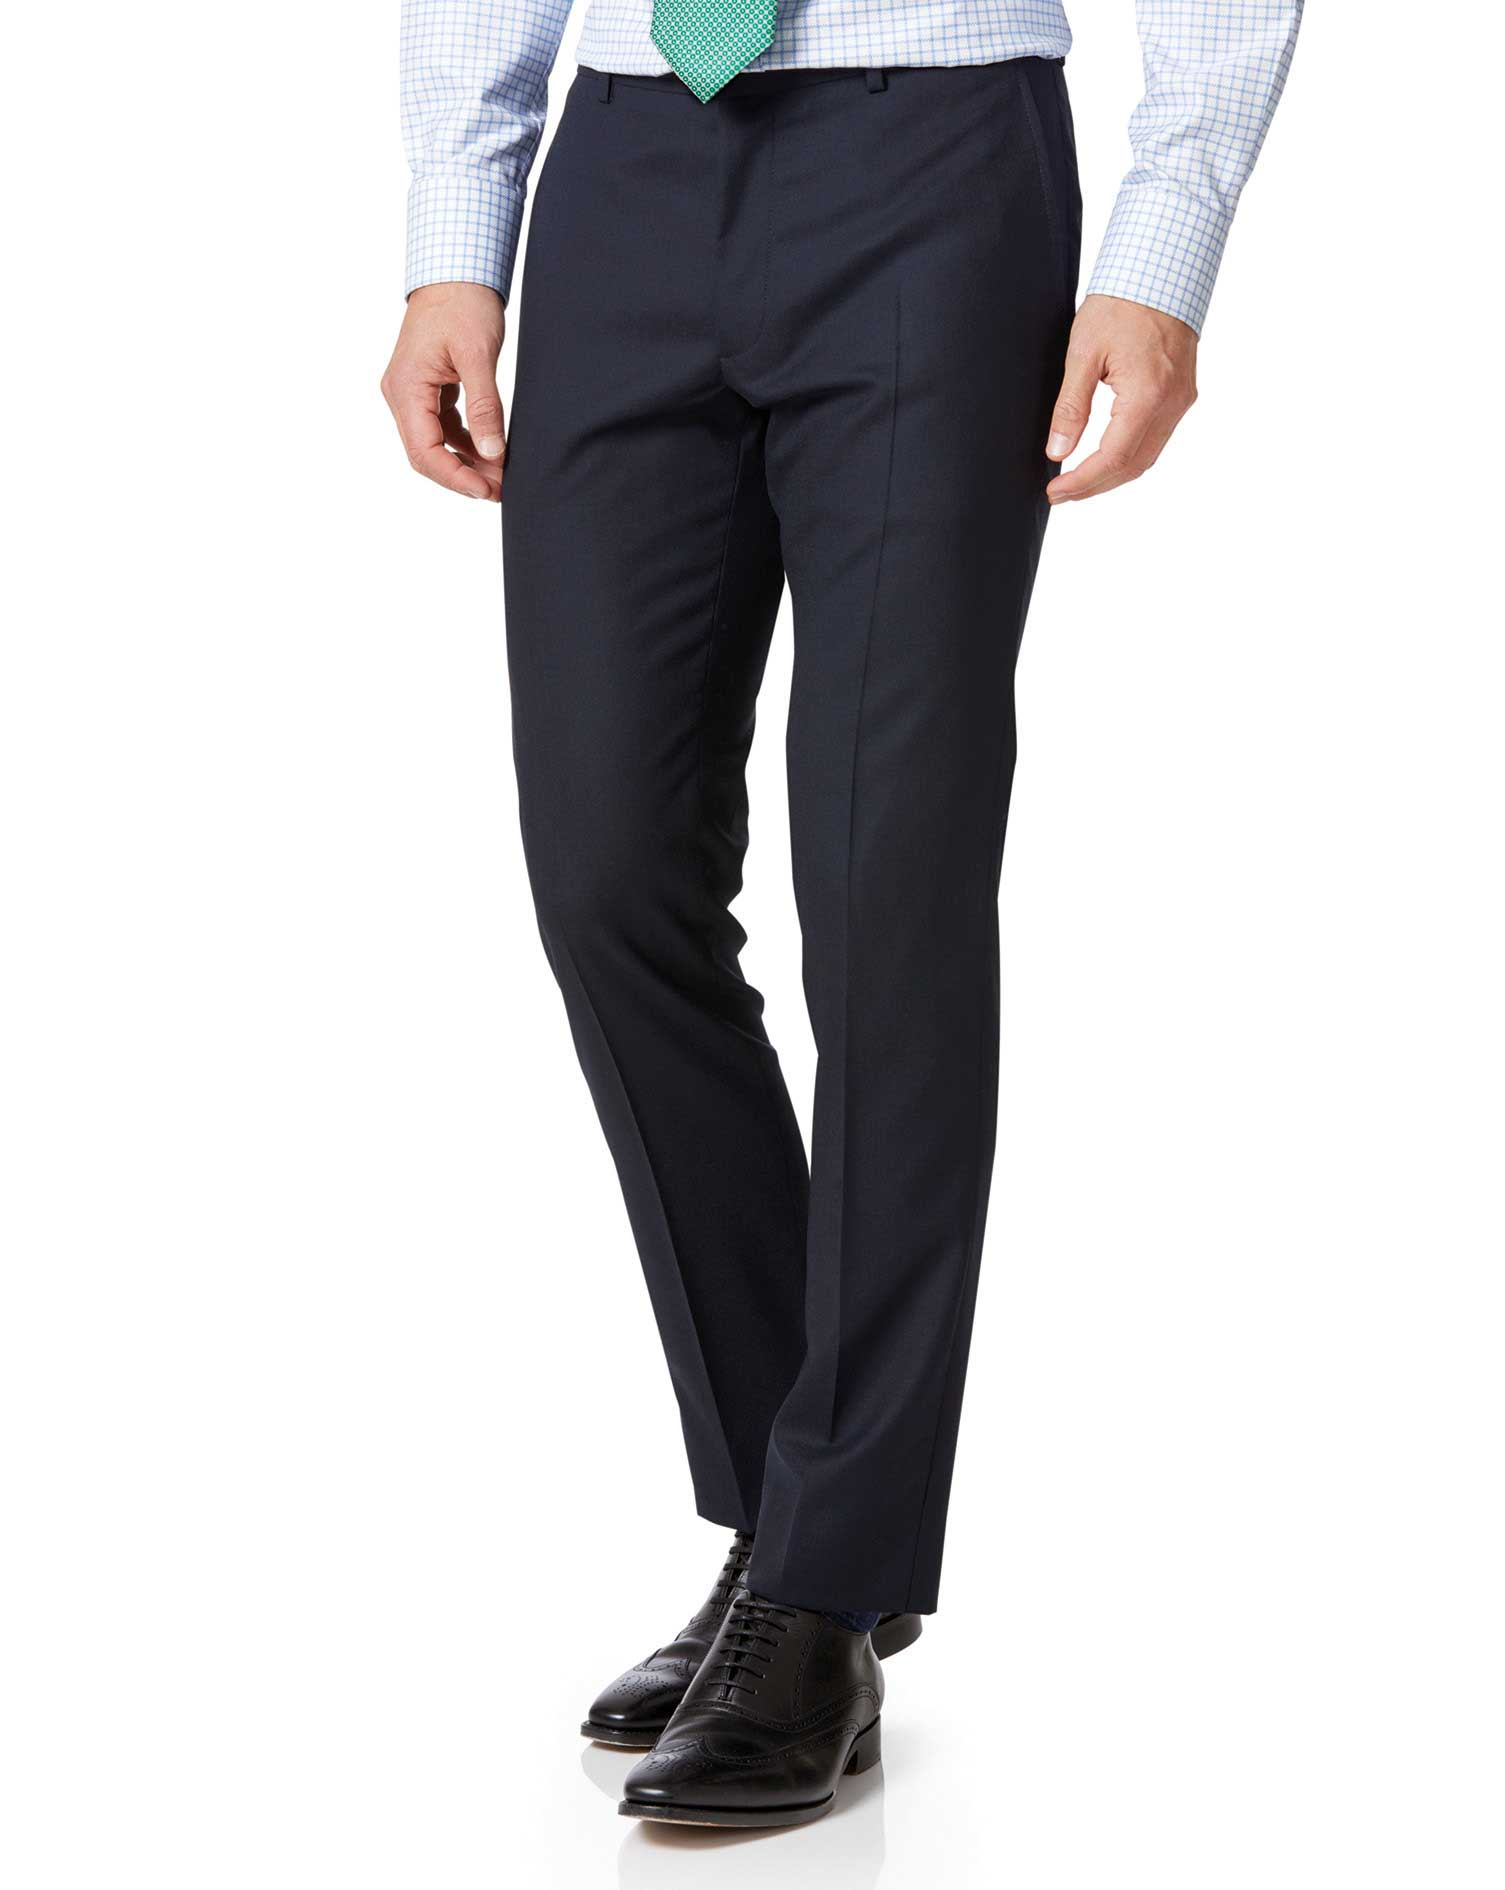 Navy Extra Slim Fit Merino Business Suit Trousers Size W30 L38 by Charles Tyrwhitt